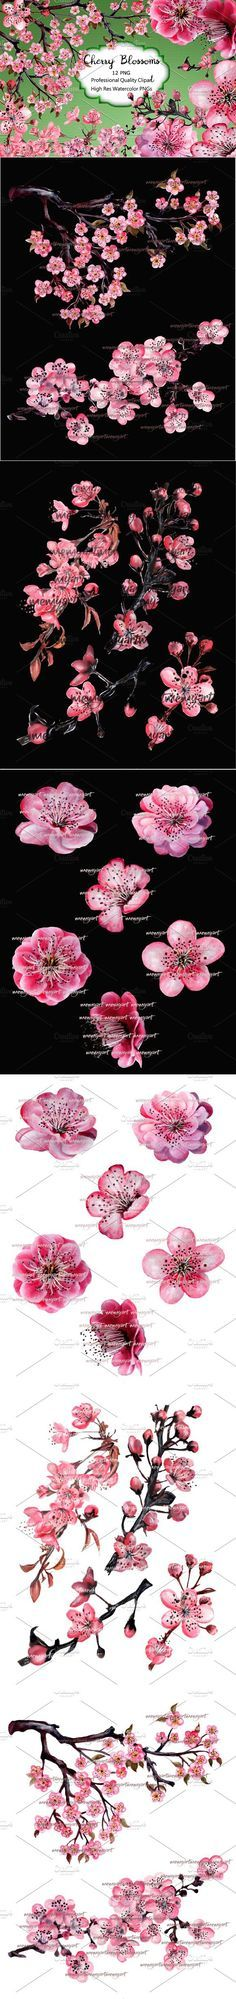 Cherry Blossom Hand Watercolor. Wedding Card Templates